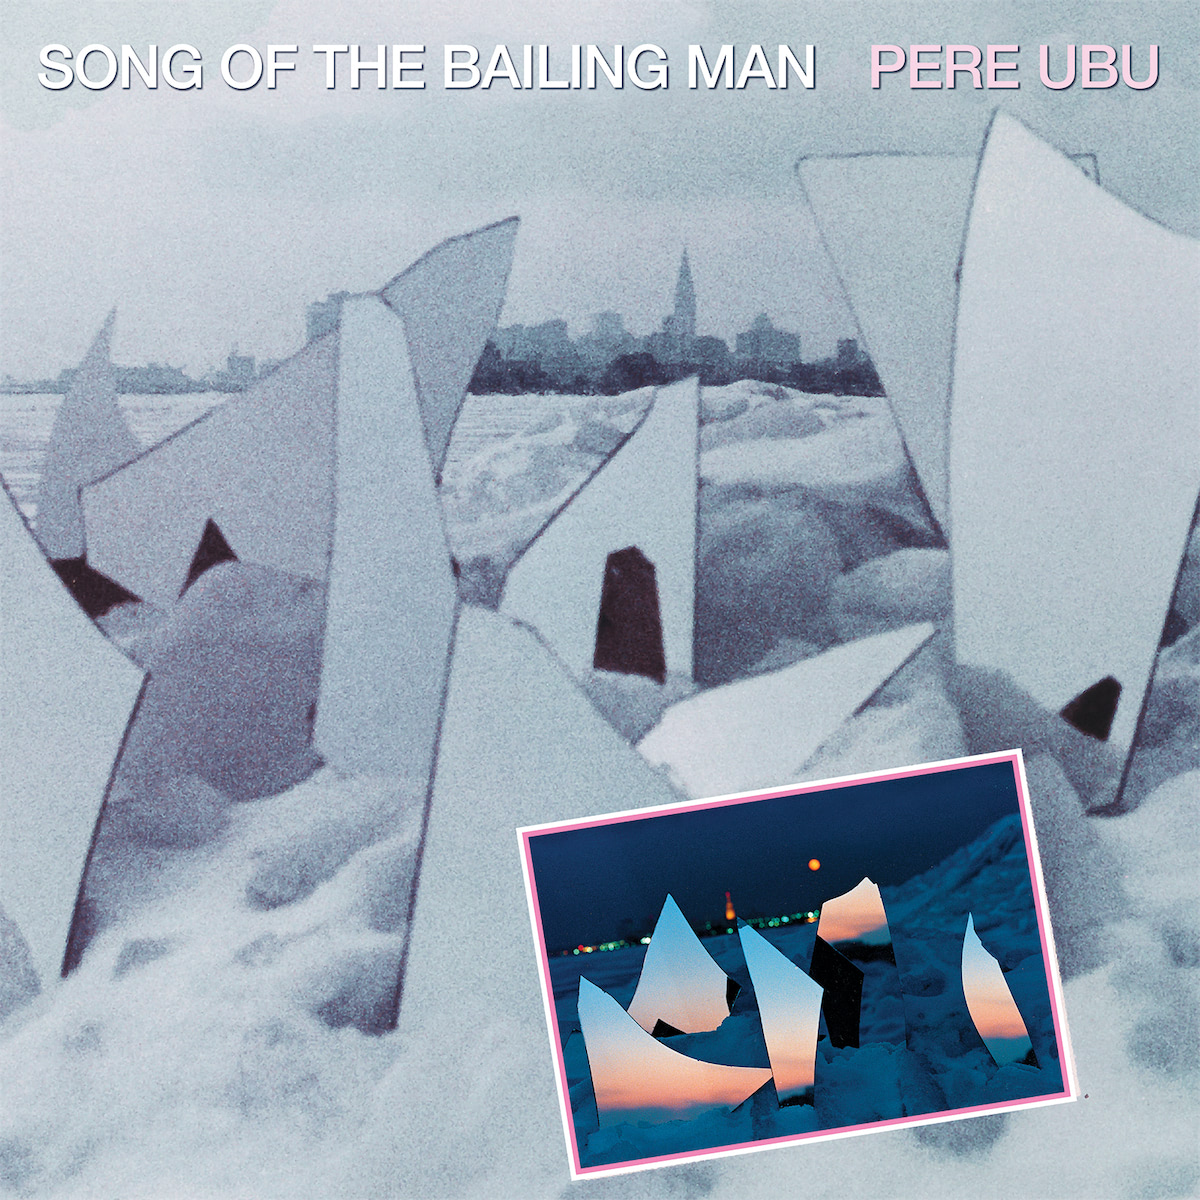 pere-ubu-song-of-the-bailing-man ART